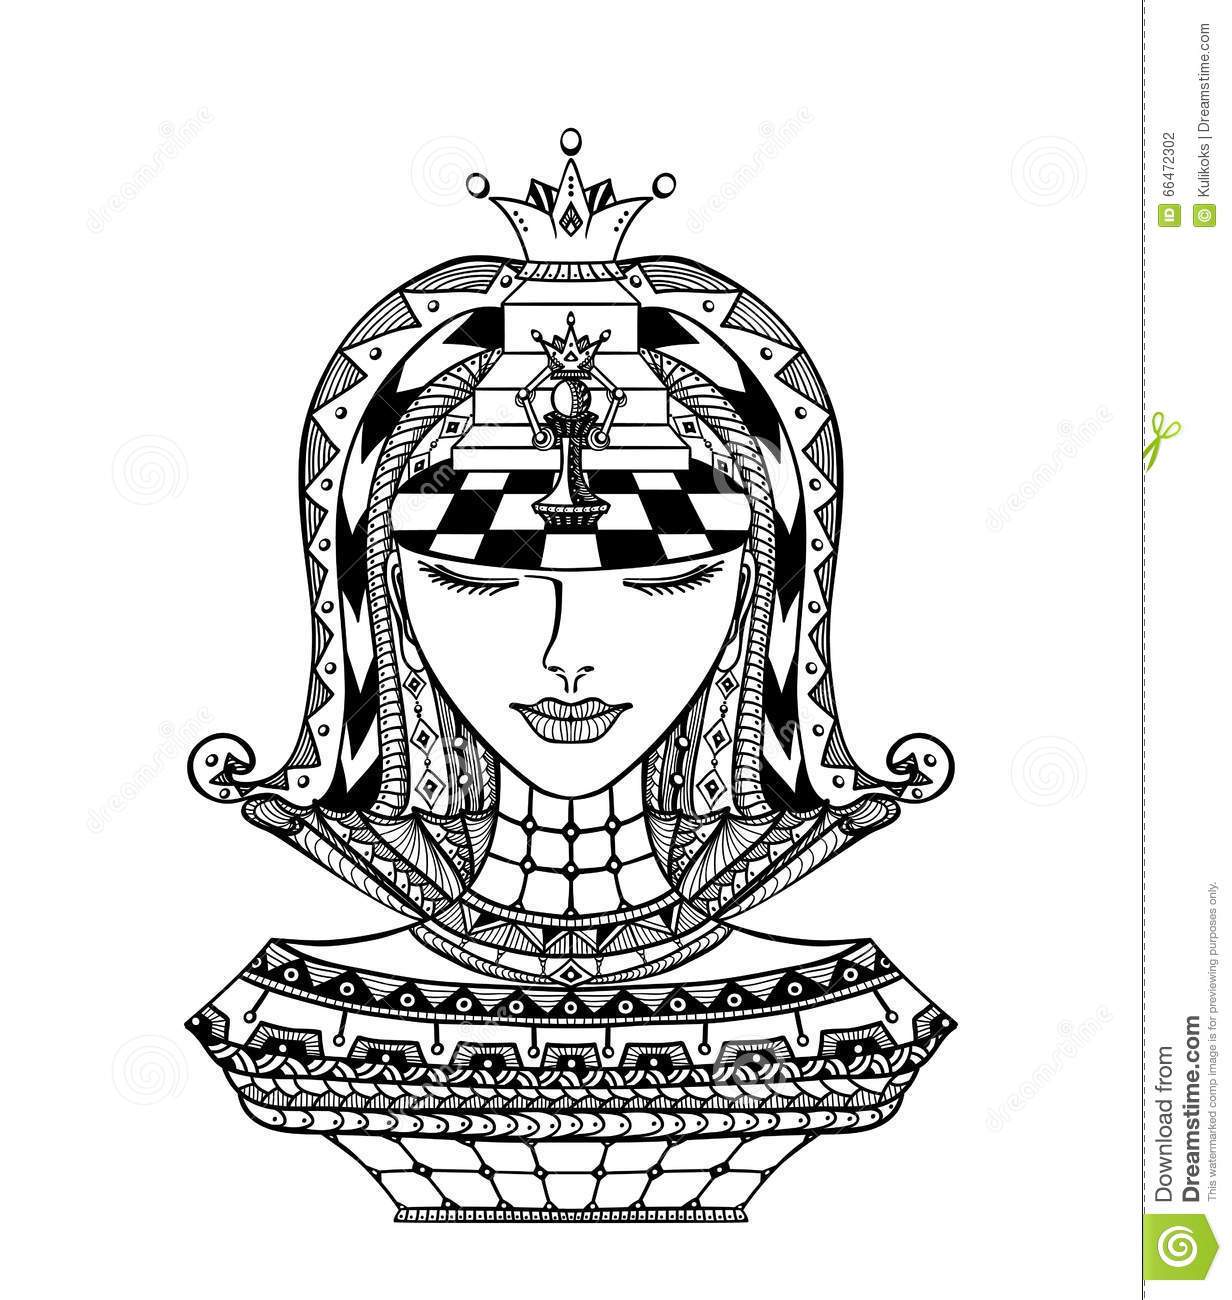 Chess Zentangle Girl Black On White Stock Vector - Illustration of ...